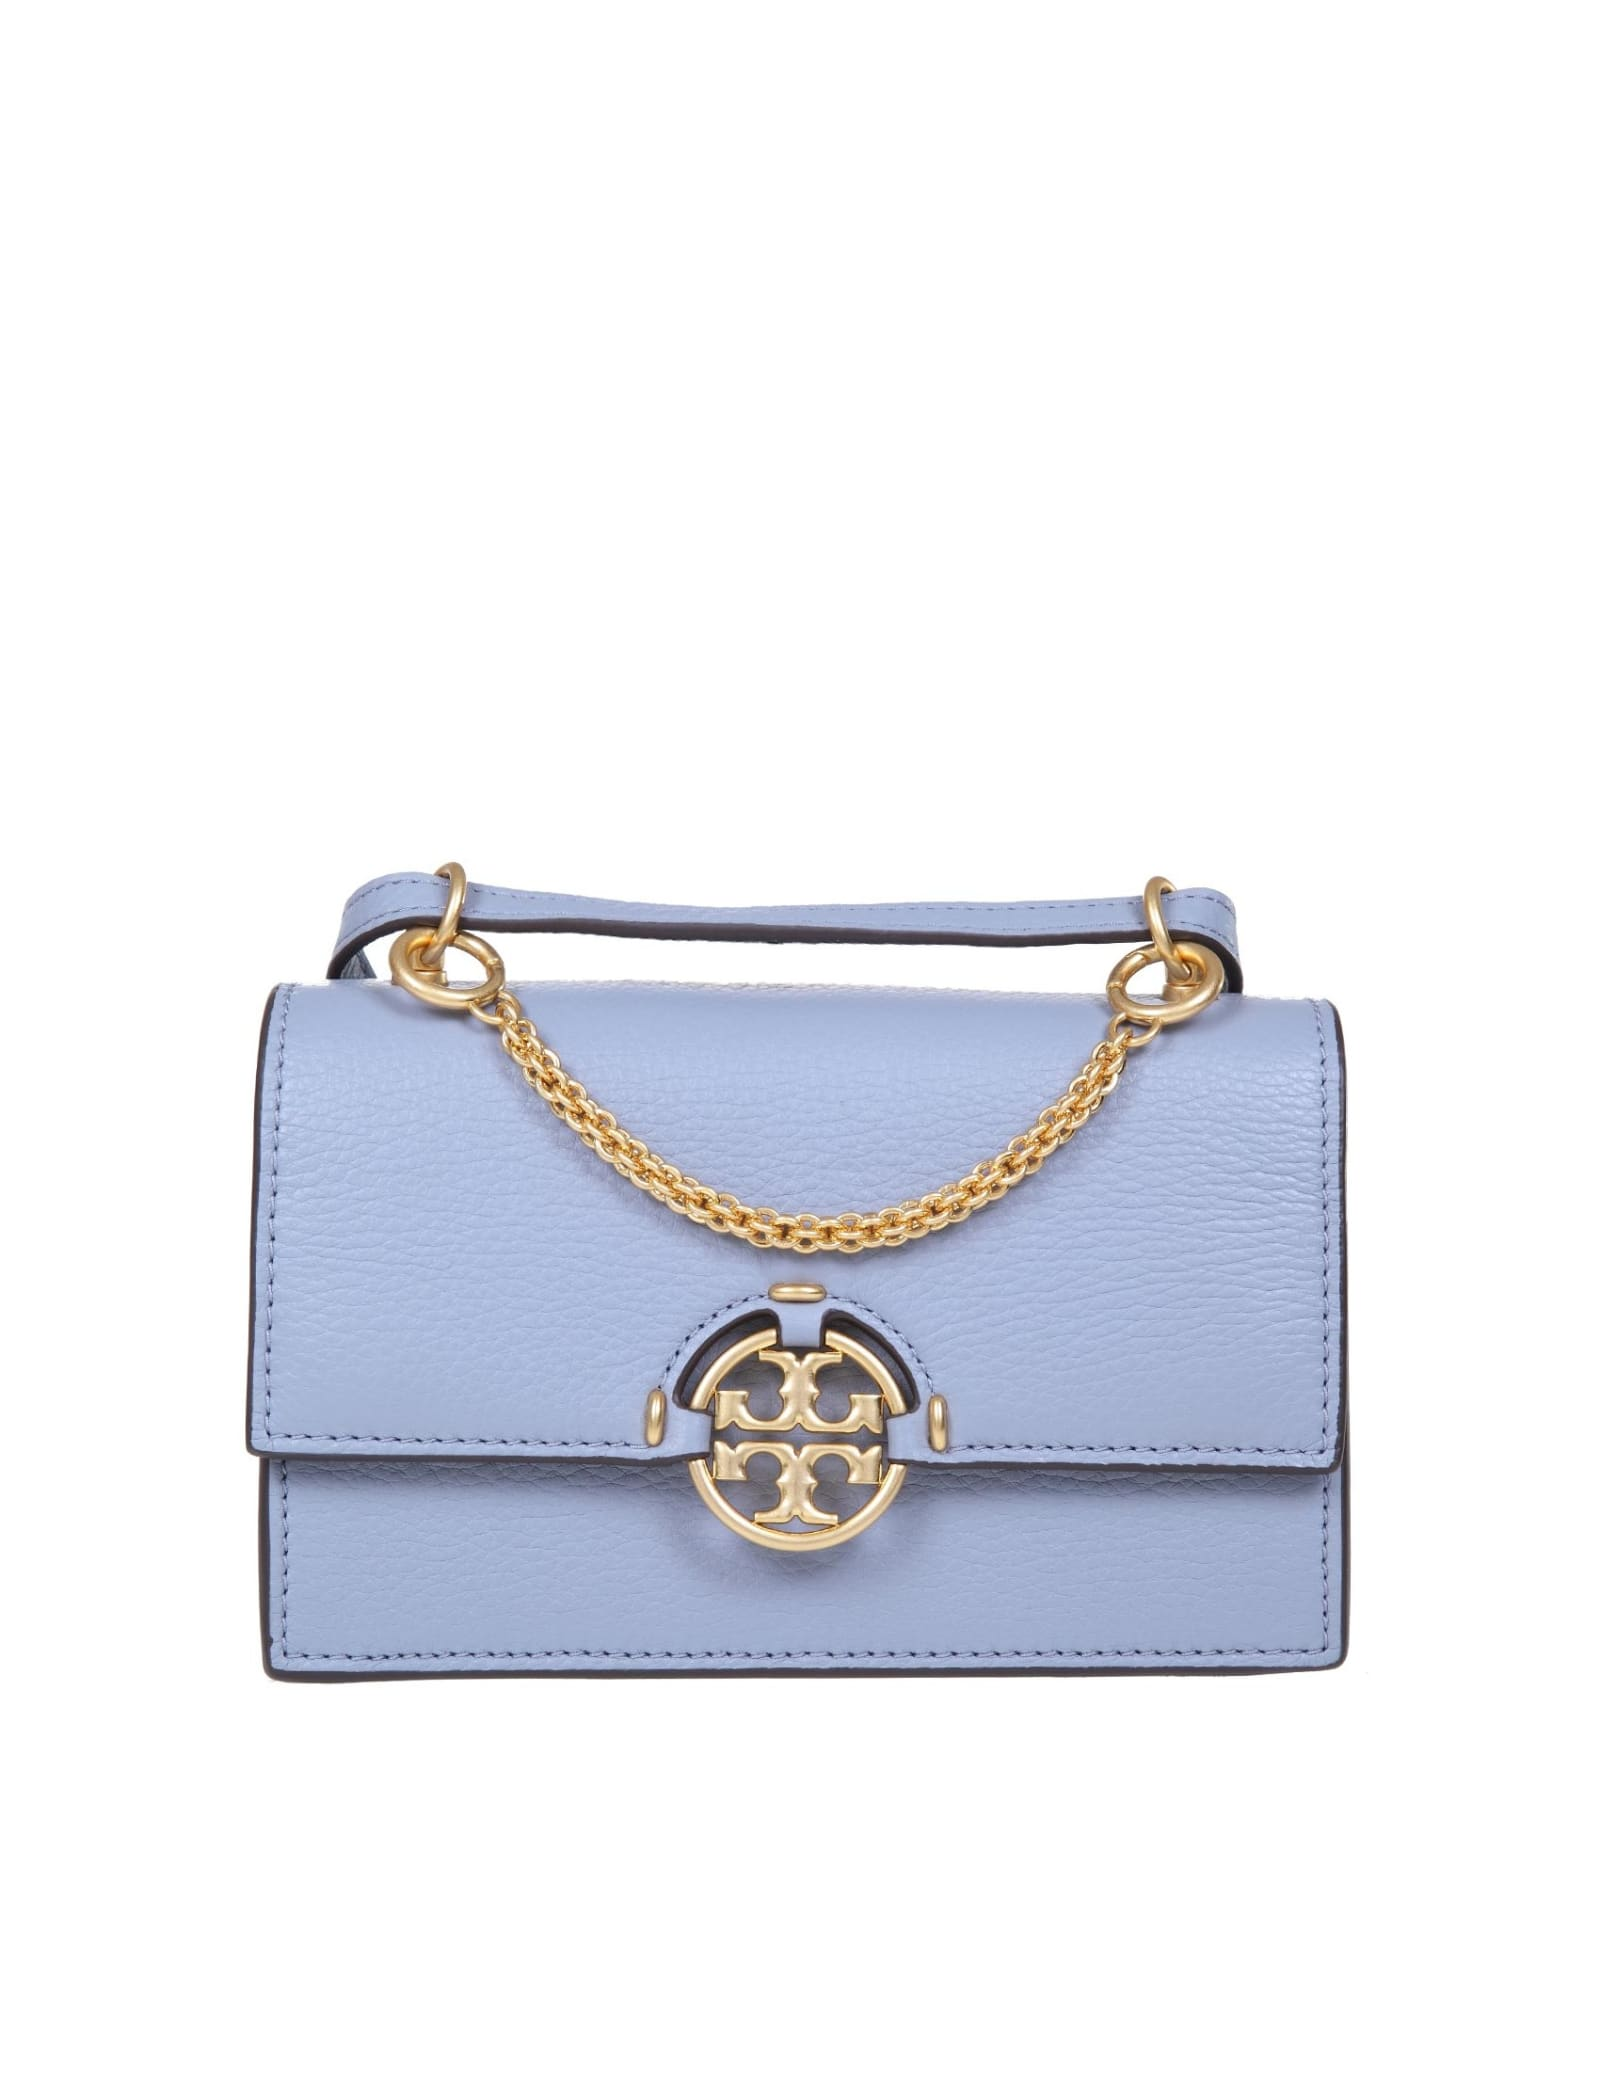 Tory Burch Leathers BOSA MILLER MINI IN LEATHER